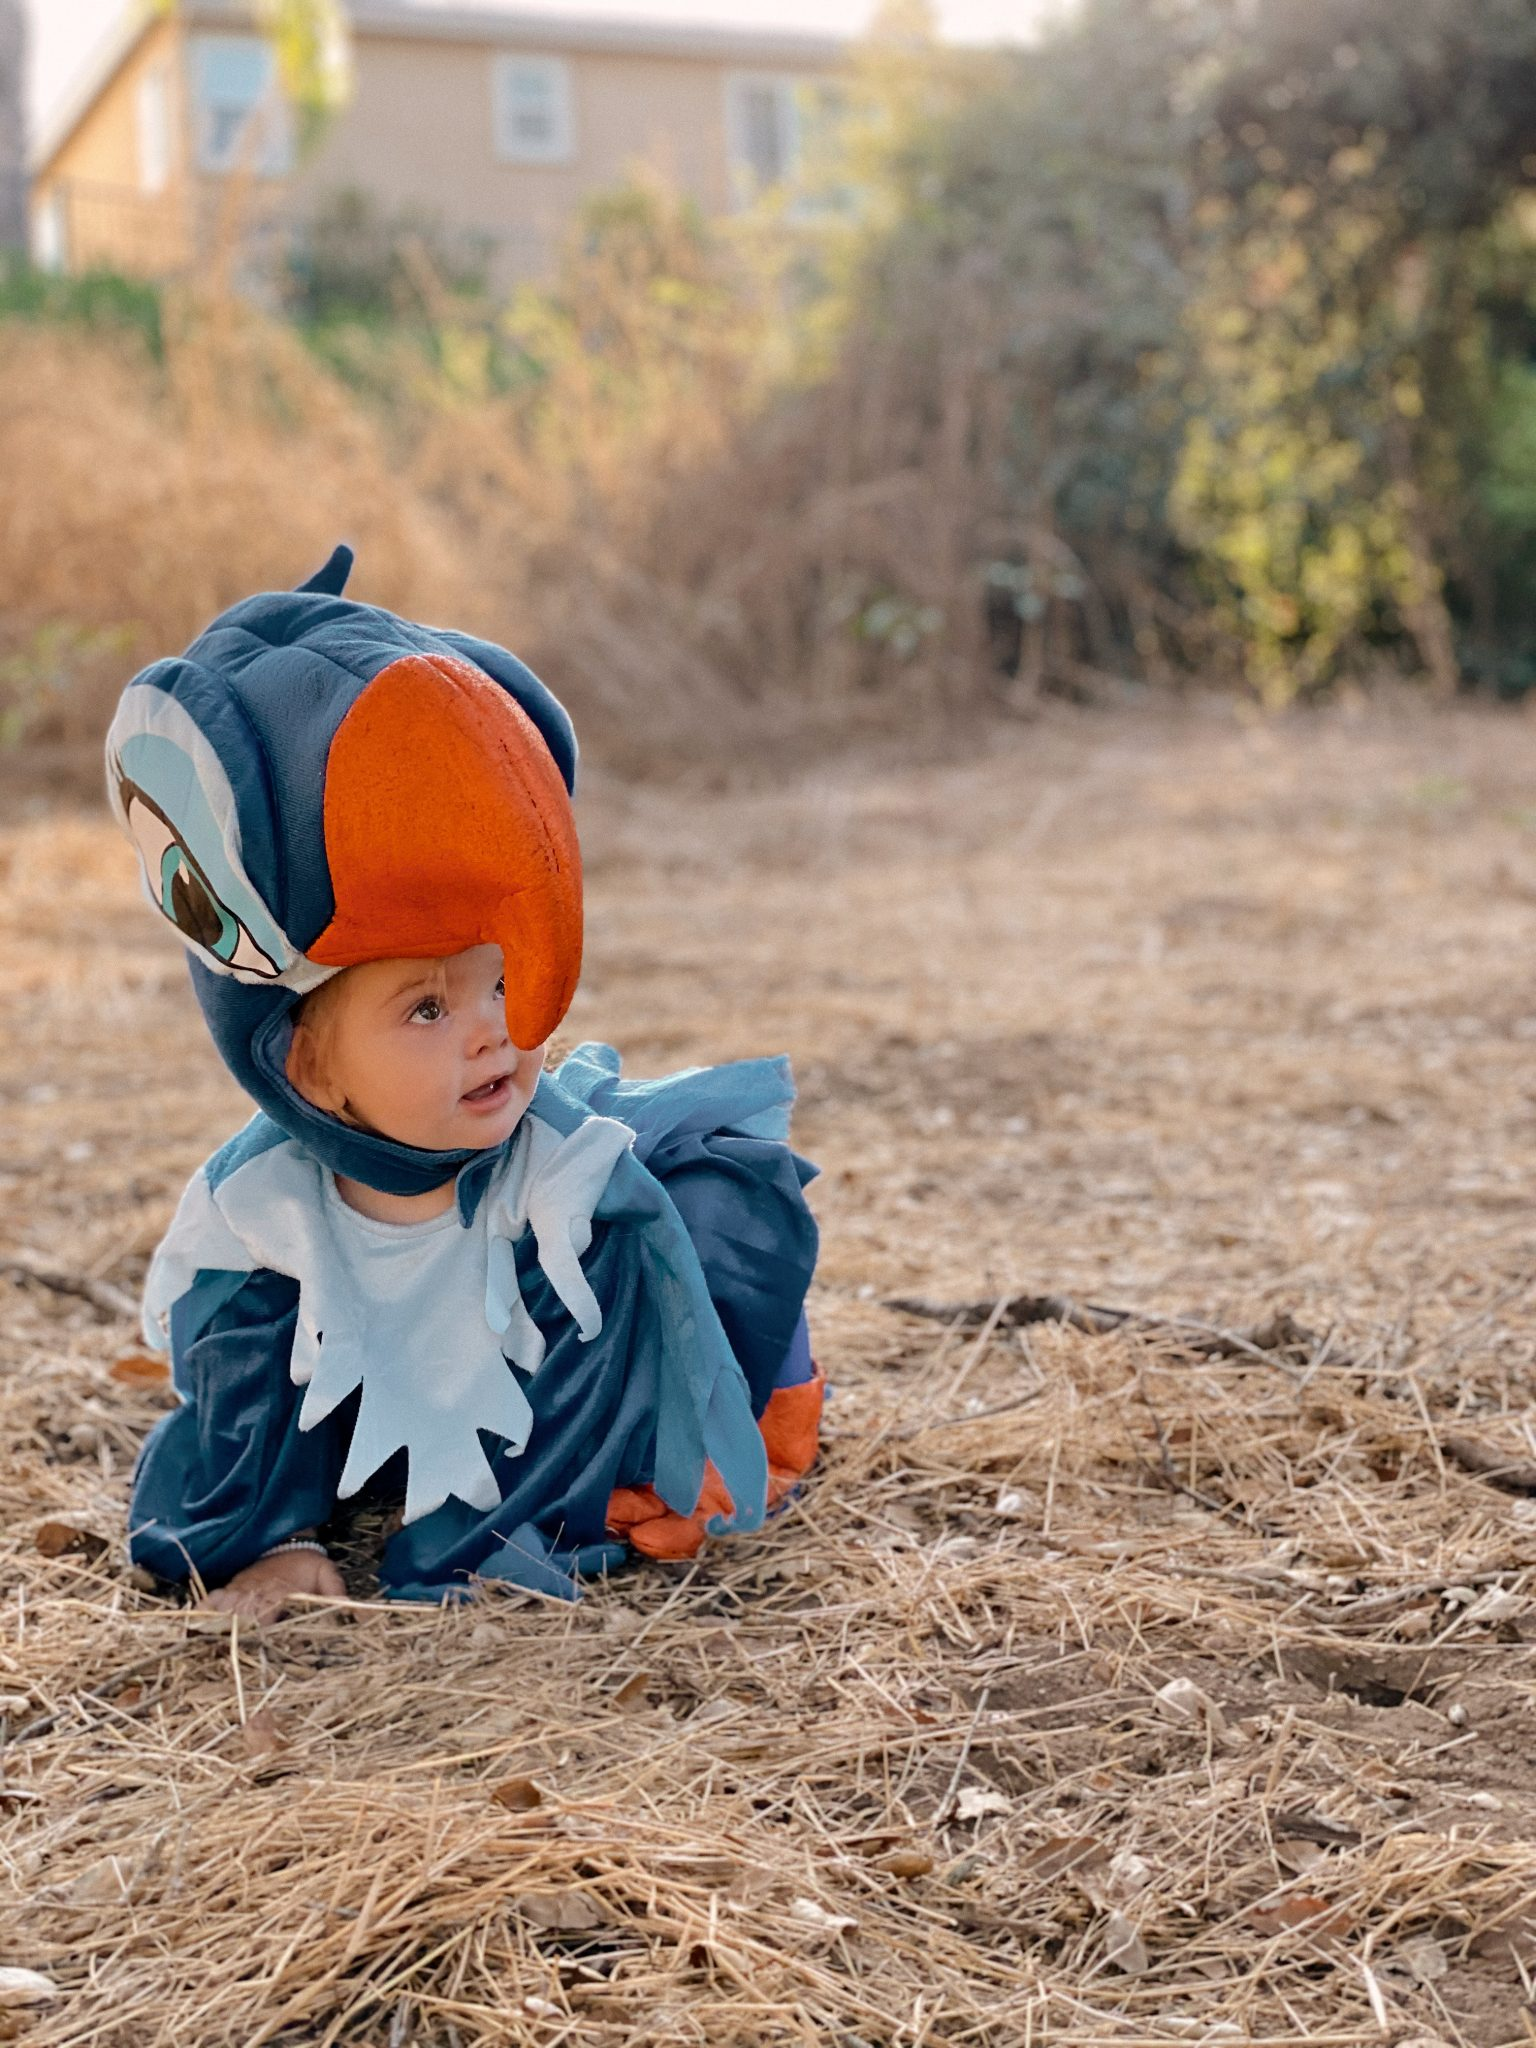 Family Halloween Costumes by popular San Diego lifestyle blog, Navy Grace: image of a little girl dressed up as Zazu from The Lion King.